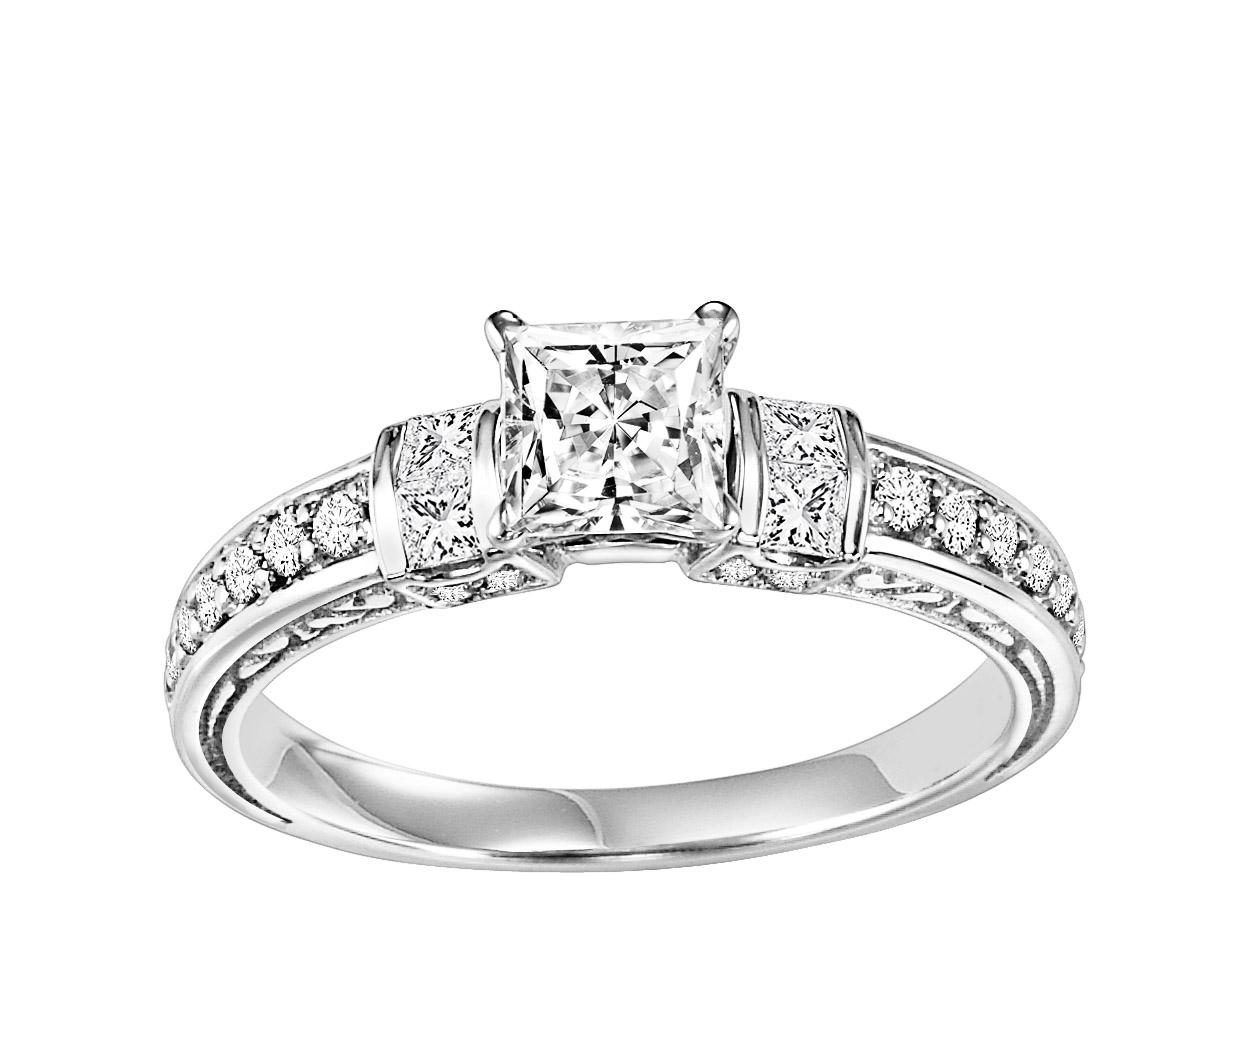 14K White Gold 1/2 ctw Diamond Ring/WB5854E